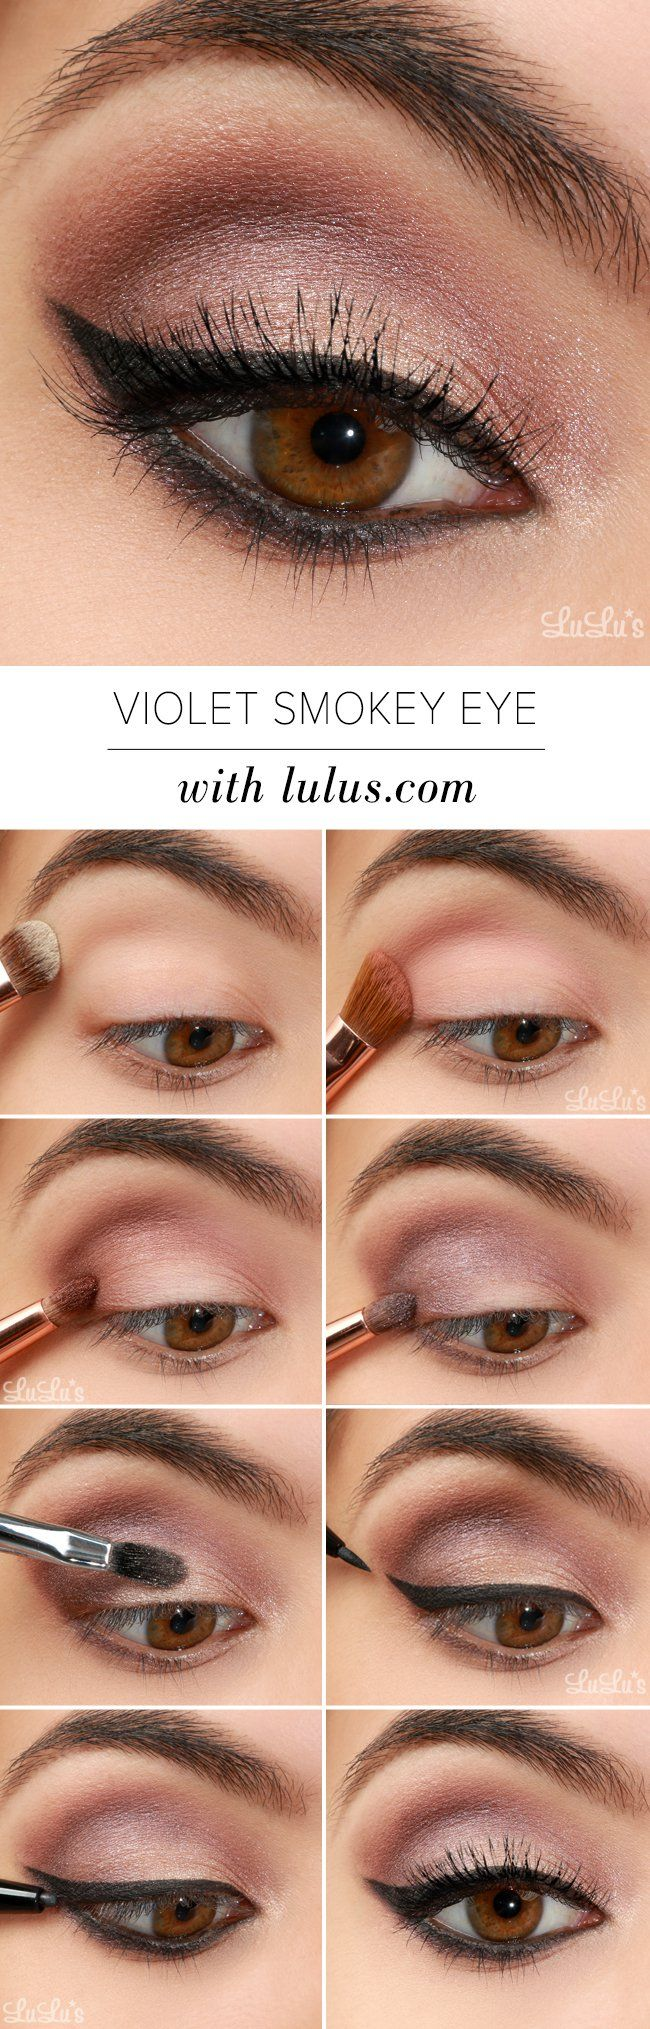 15 fabulous step by step makeup tutorials you would love to try 15 fabulous step by step makeup tutorials you would love to try baditri Images